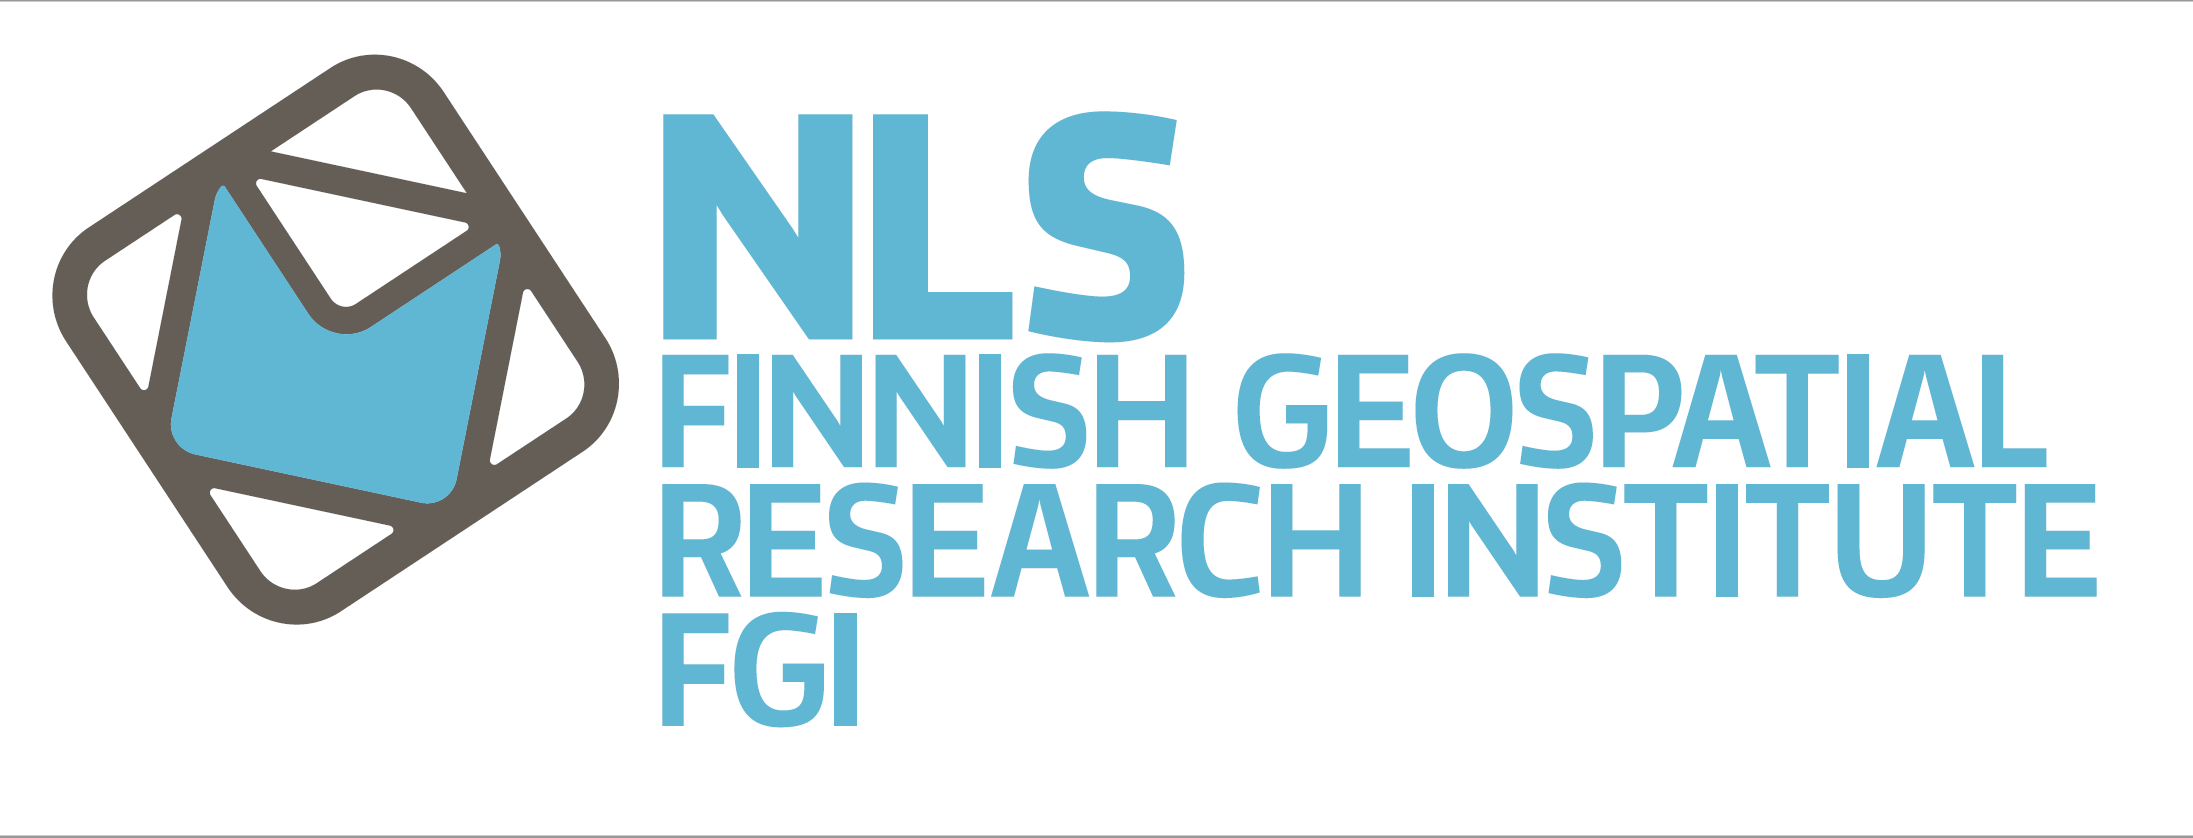 National Land Survey of Finland, Finnish Geospatial Research Institute